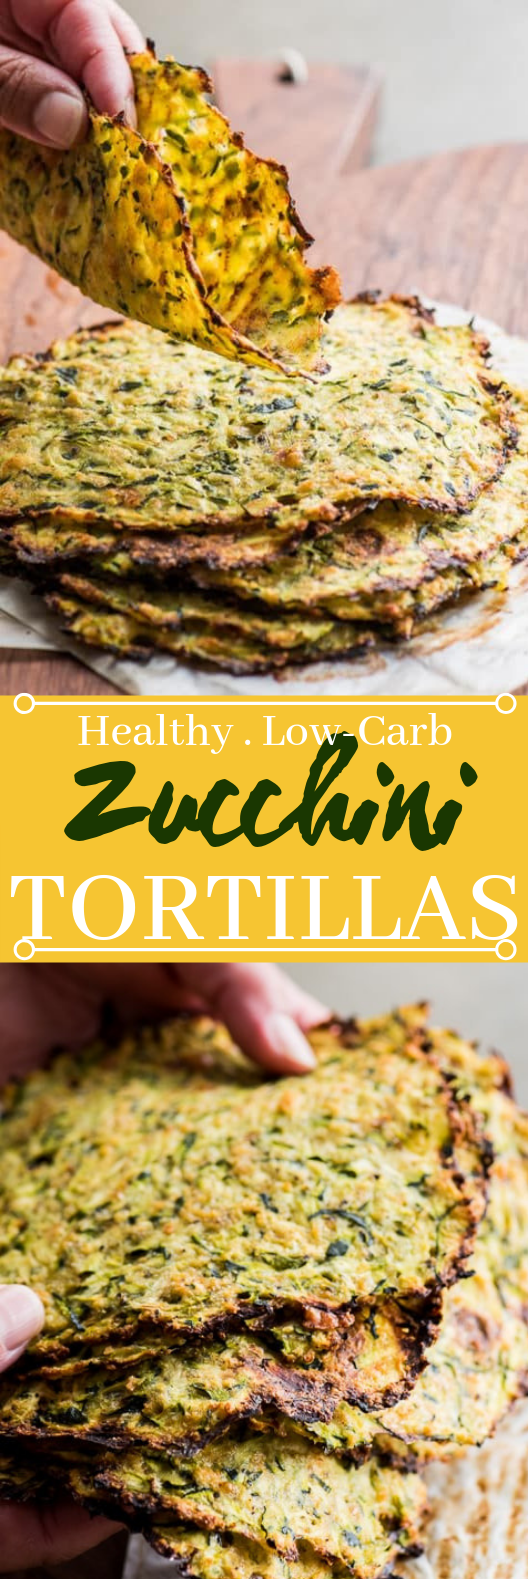 LOW CARB ZUCCHINI TORTILLAS #healthy #keto